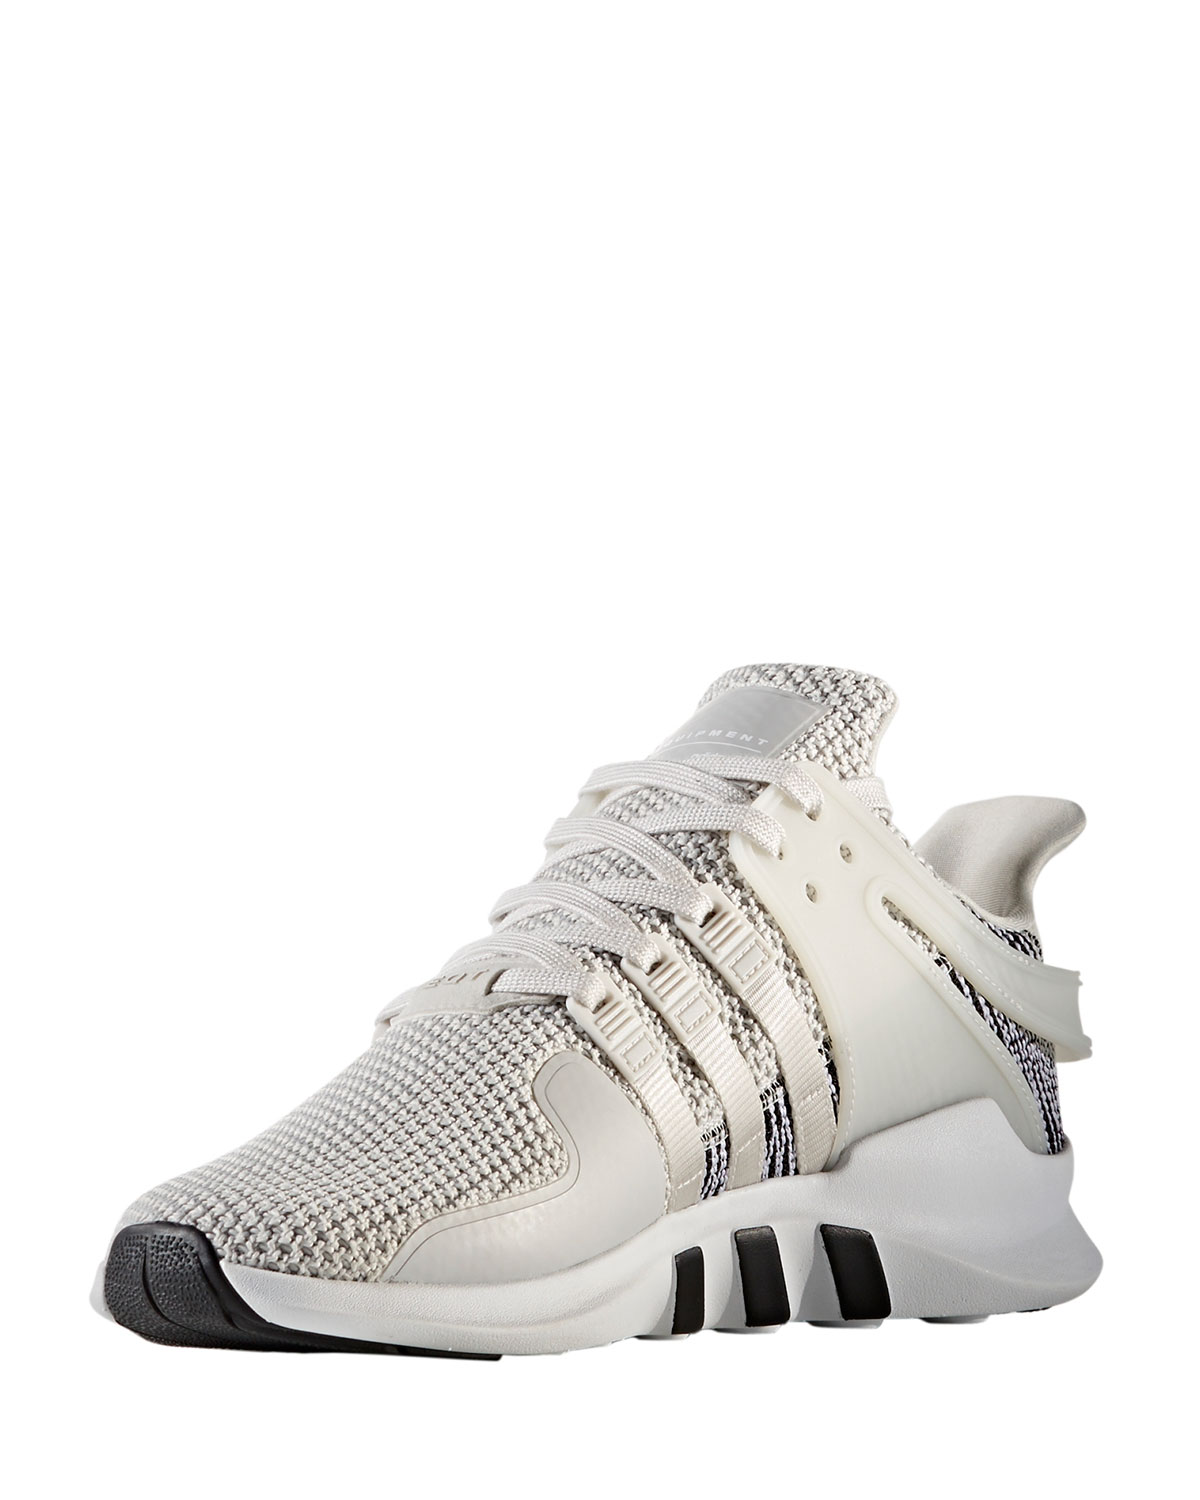 the best attitude 5f960 b23ed AdidasMens EQT Support ADV Trainer Sneakers